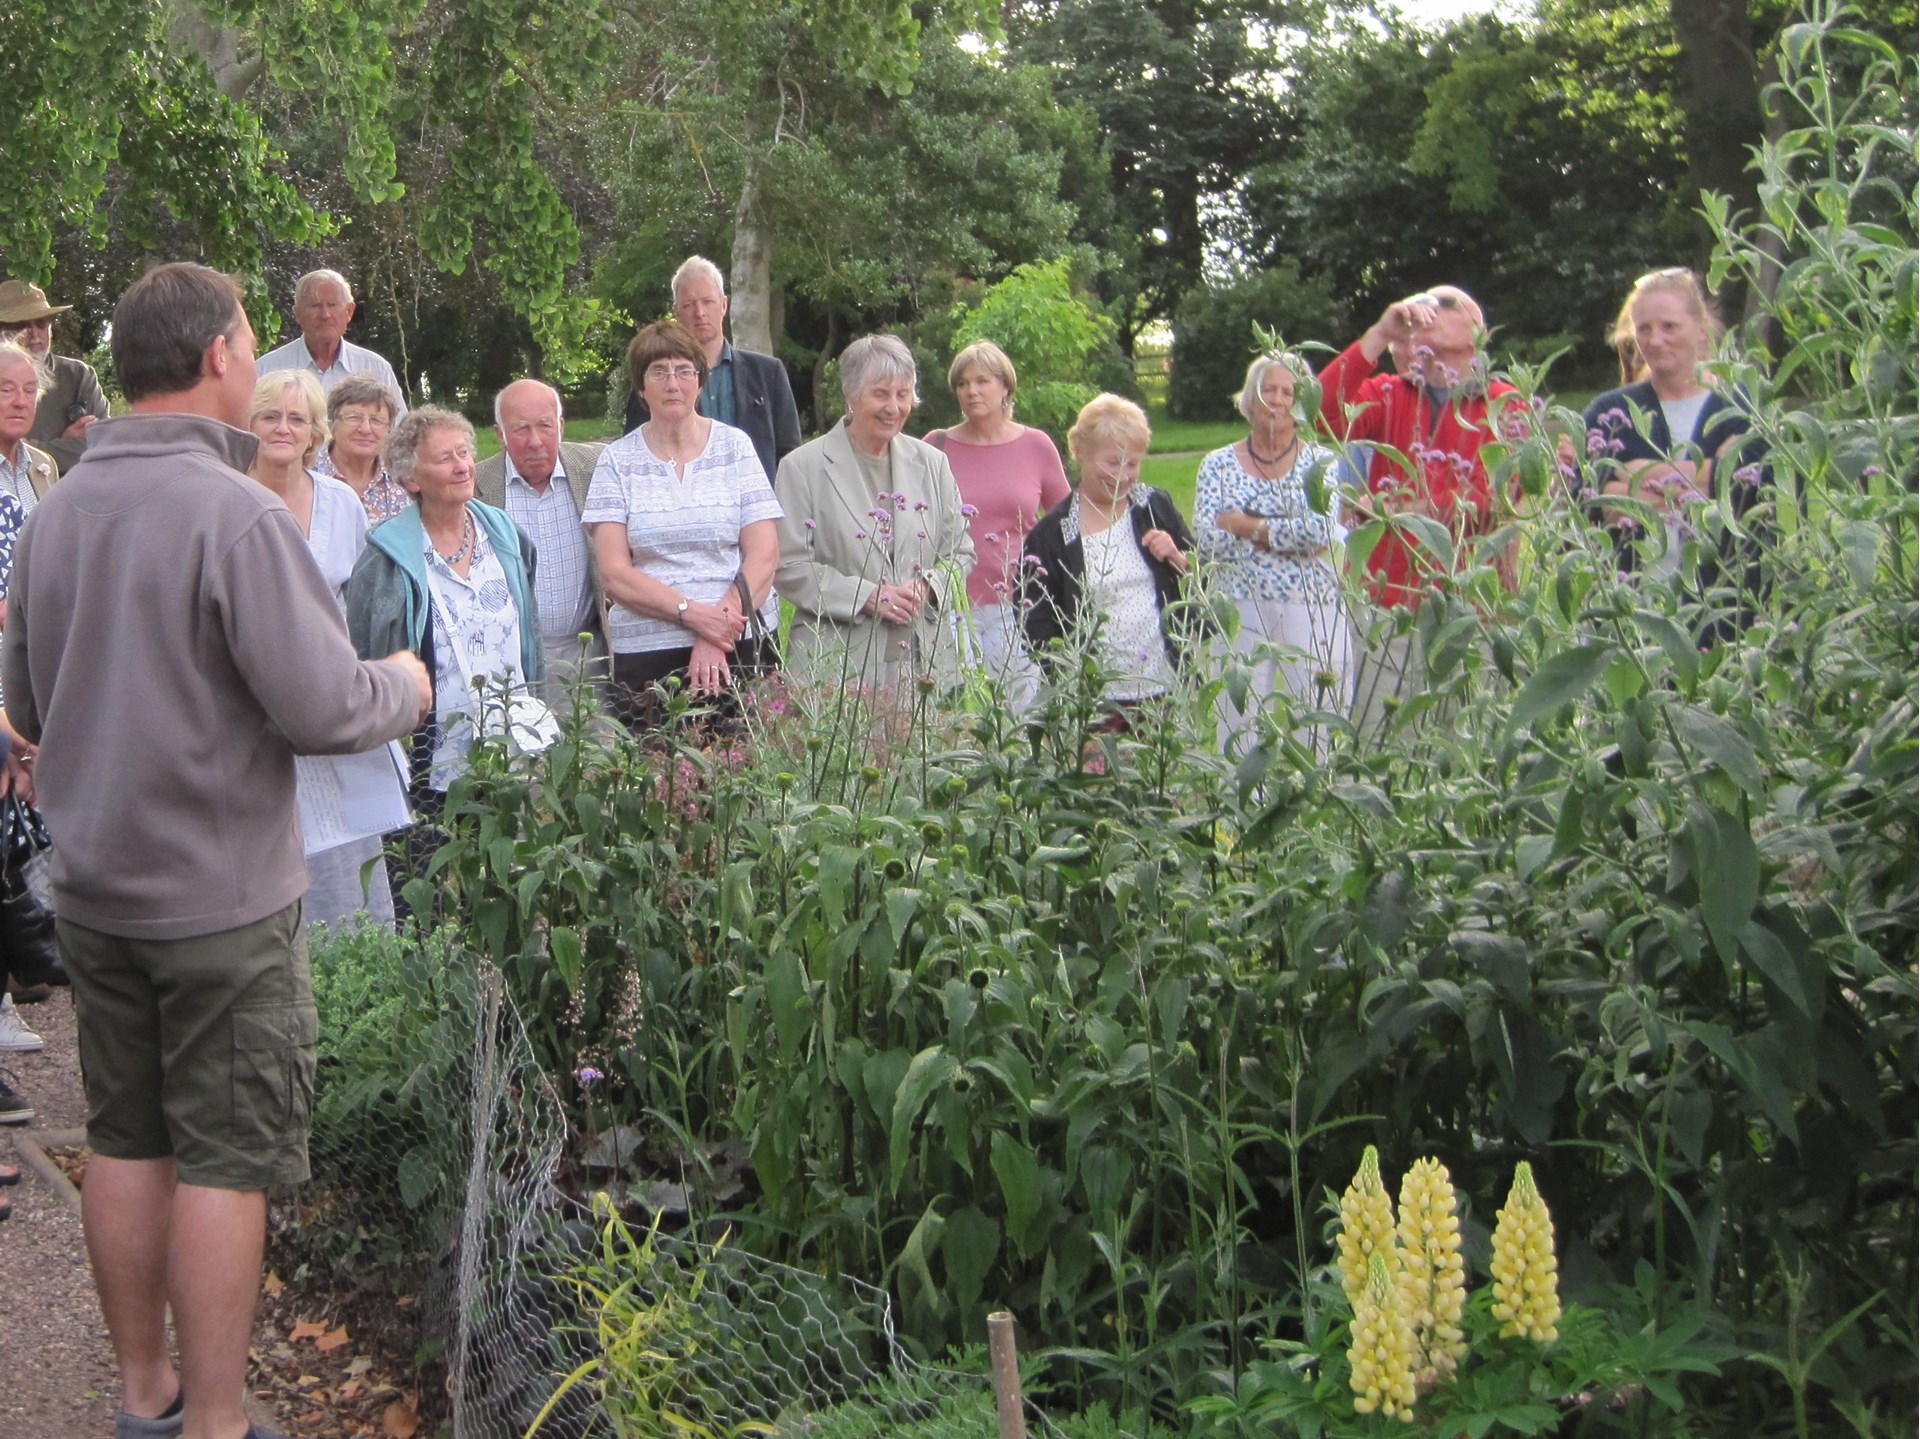 Members  at a guided tour of Nynehead Court